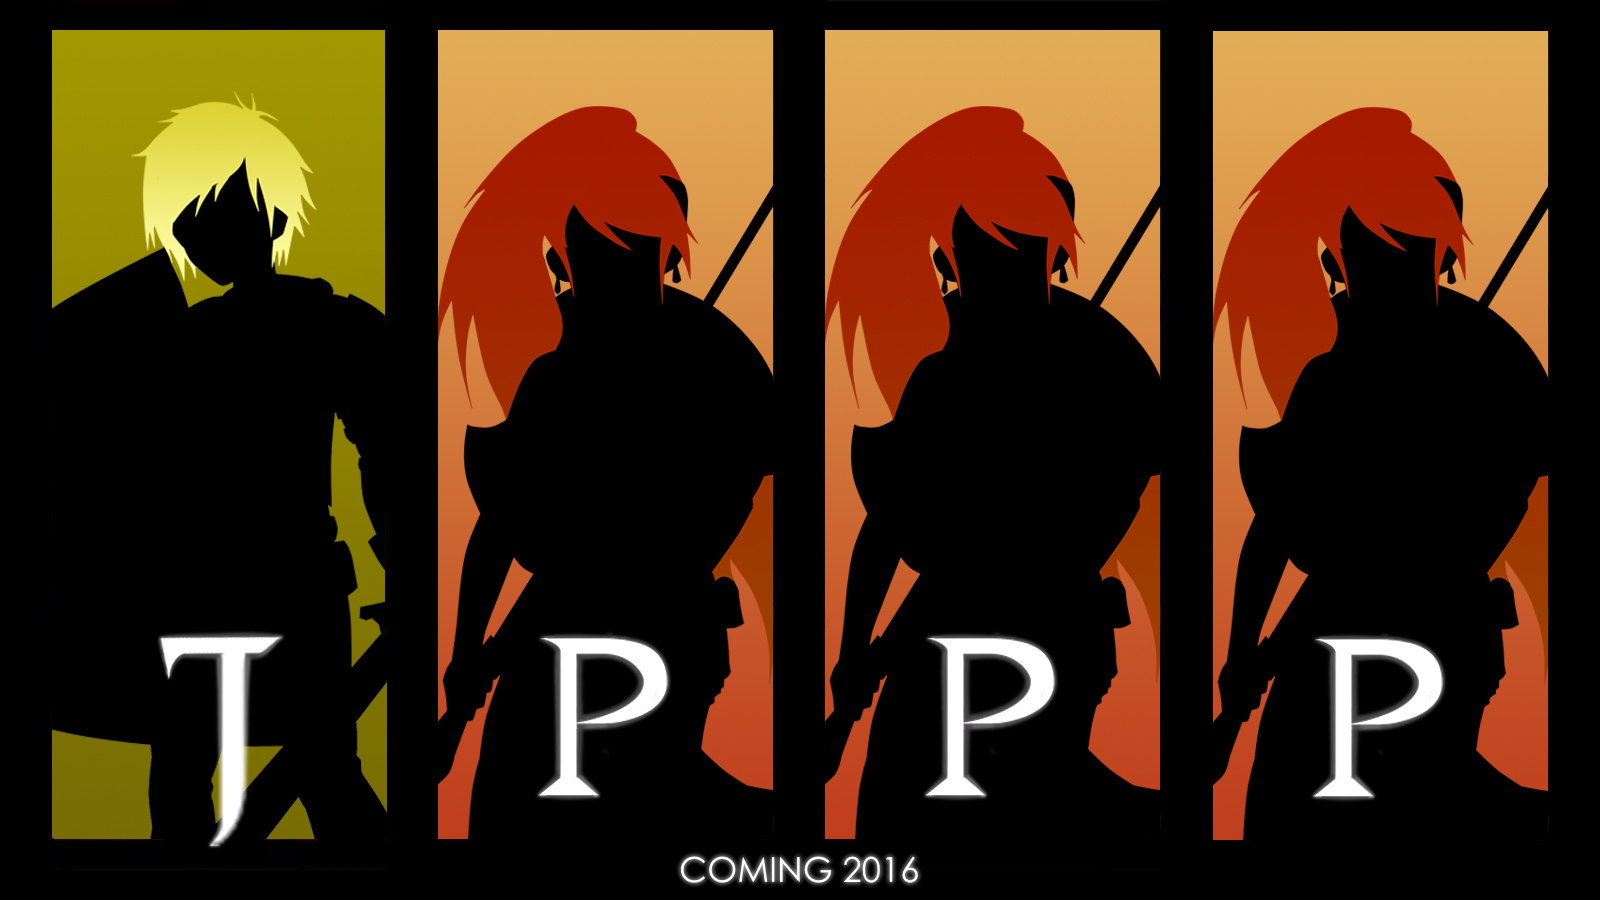 So I heard the devs are starting work on JNPR for Grimm